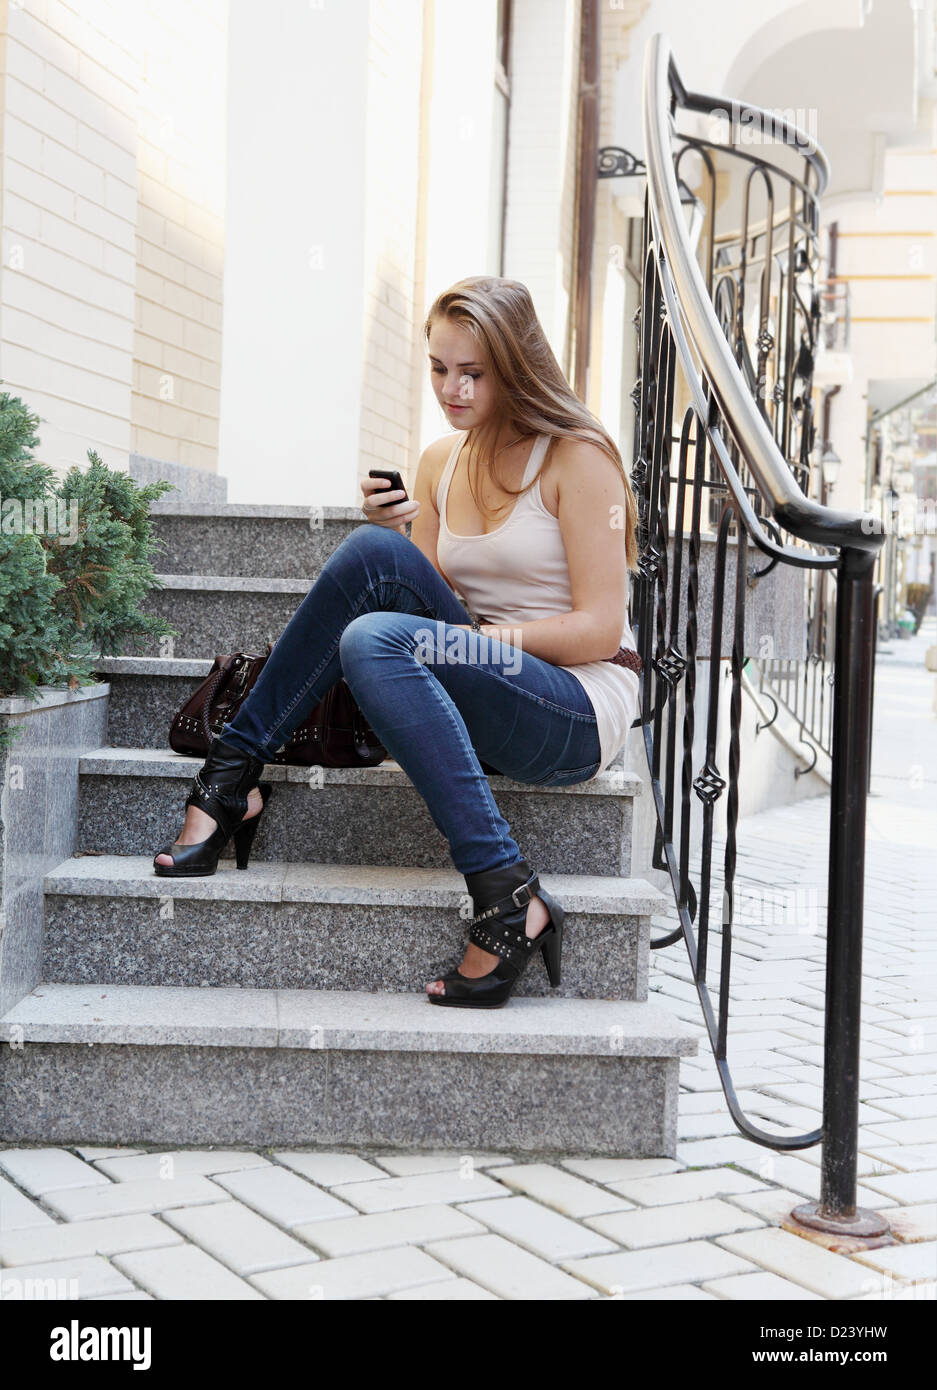 Young Woman Calling by Phone Outdoors Urban Scene Stock Photo